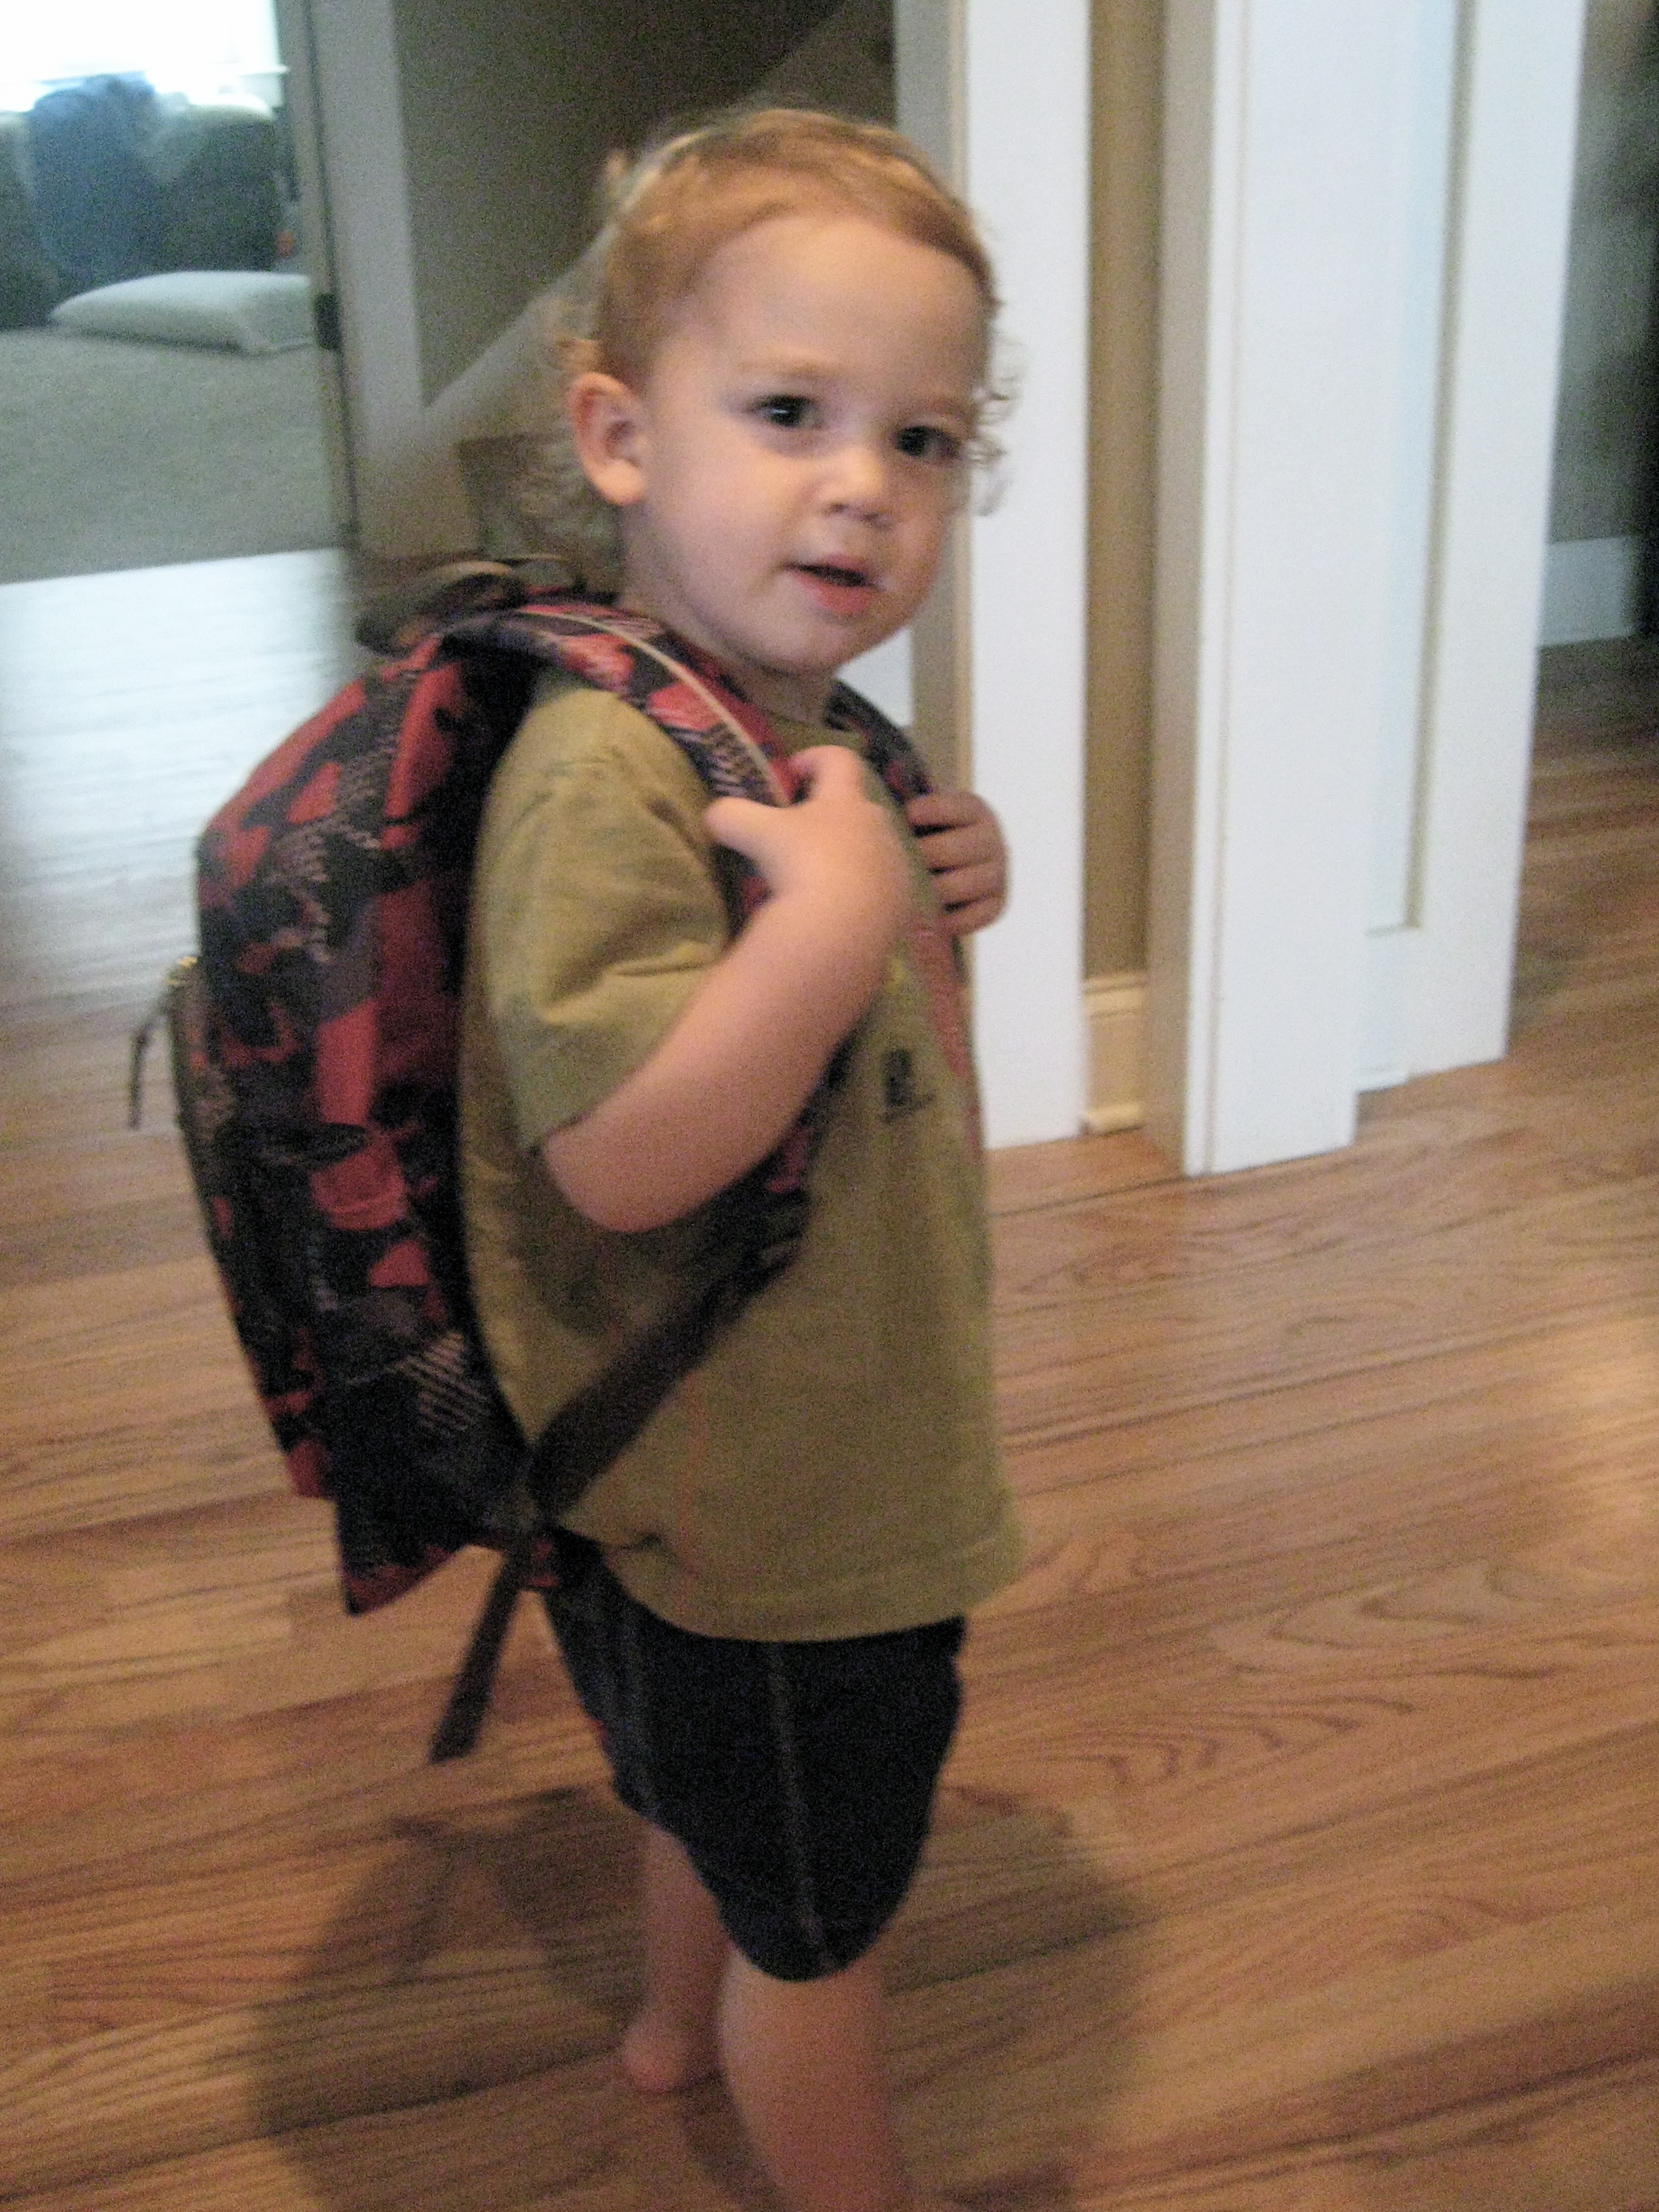 Thanks Marmi for the cool backpack!